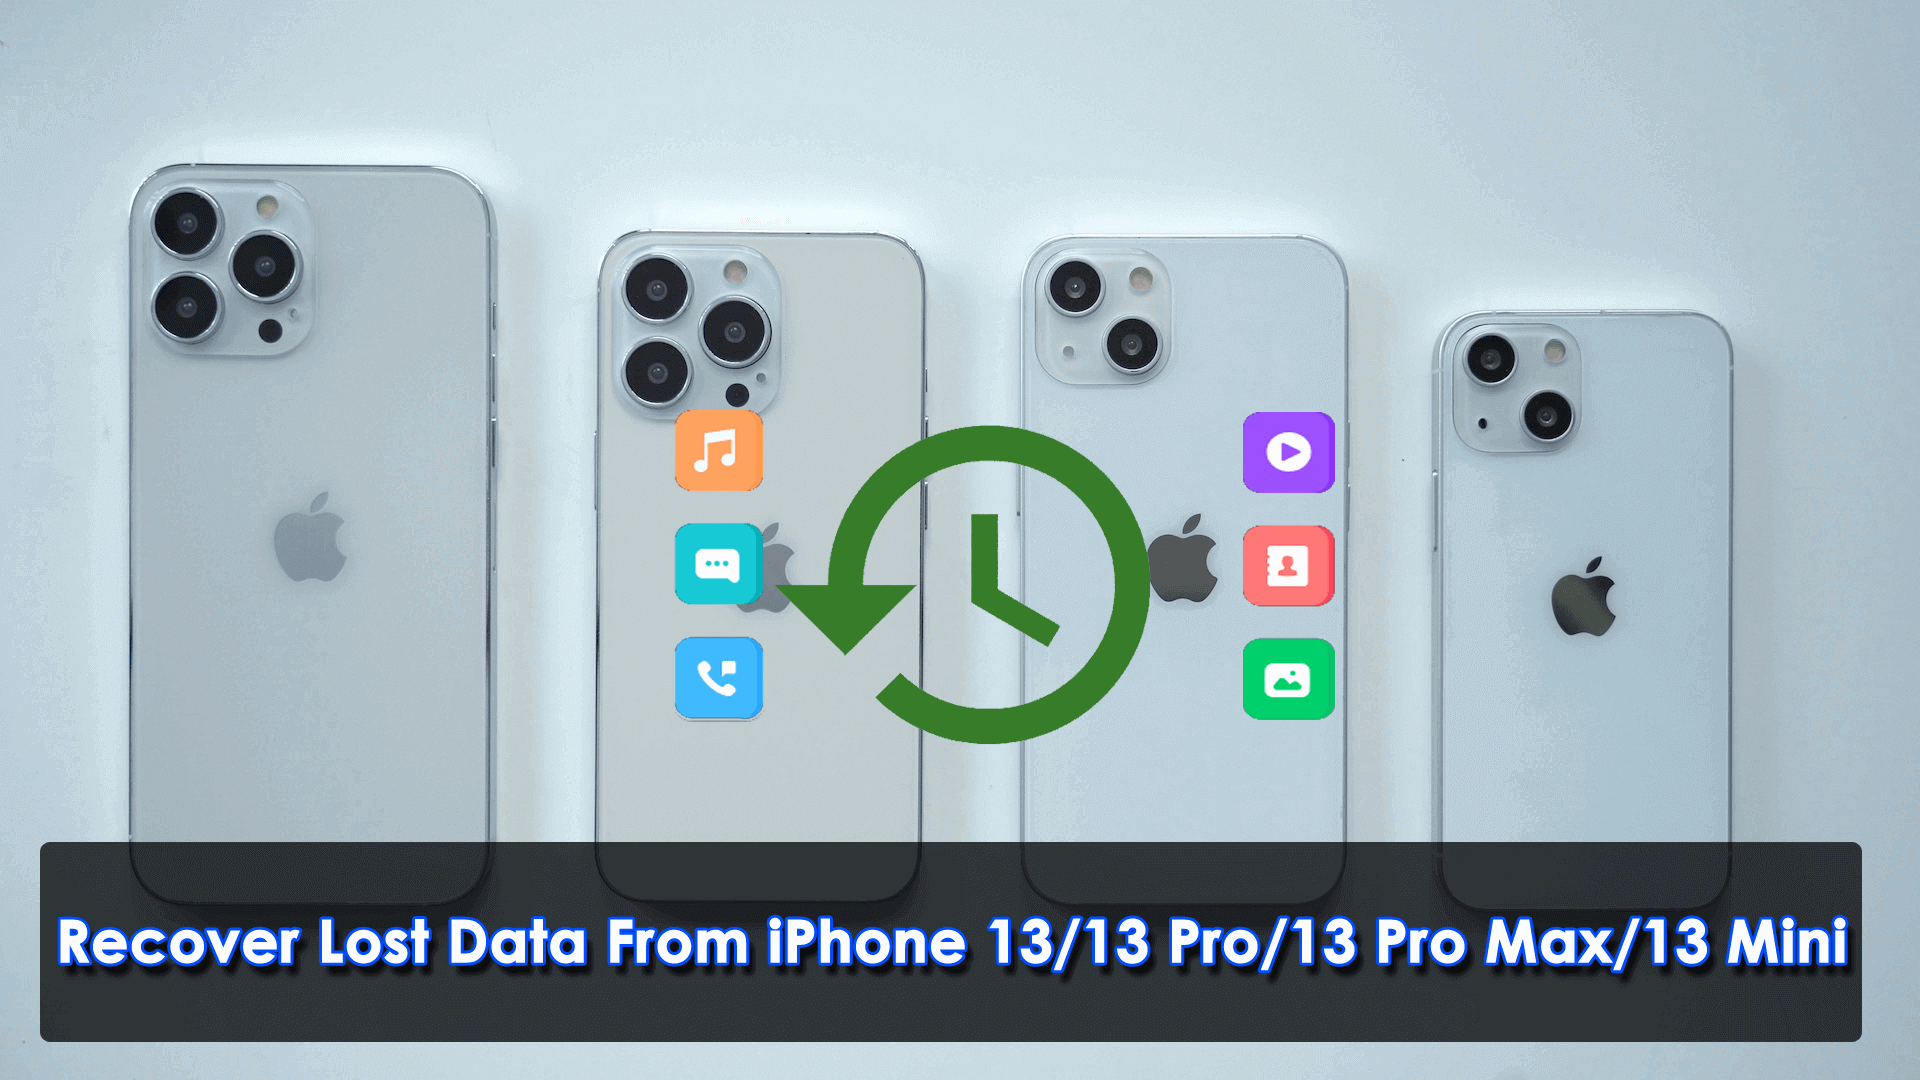 Recover Lost Data From iPhone 13